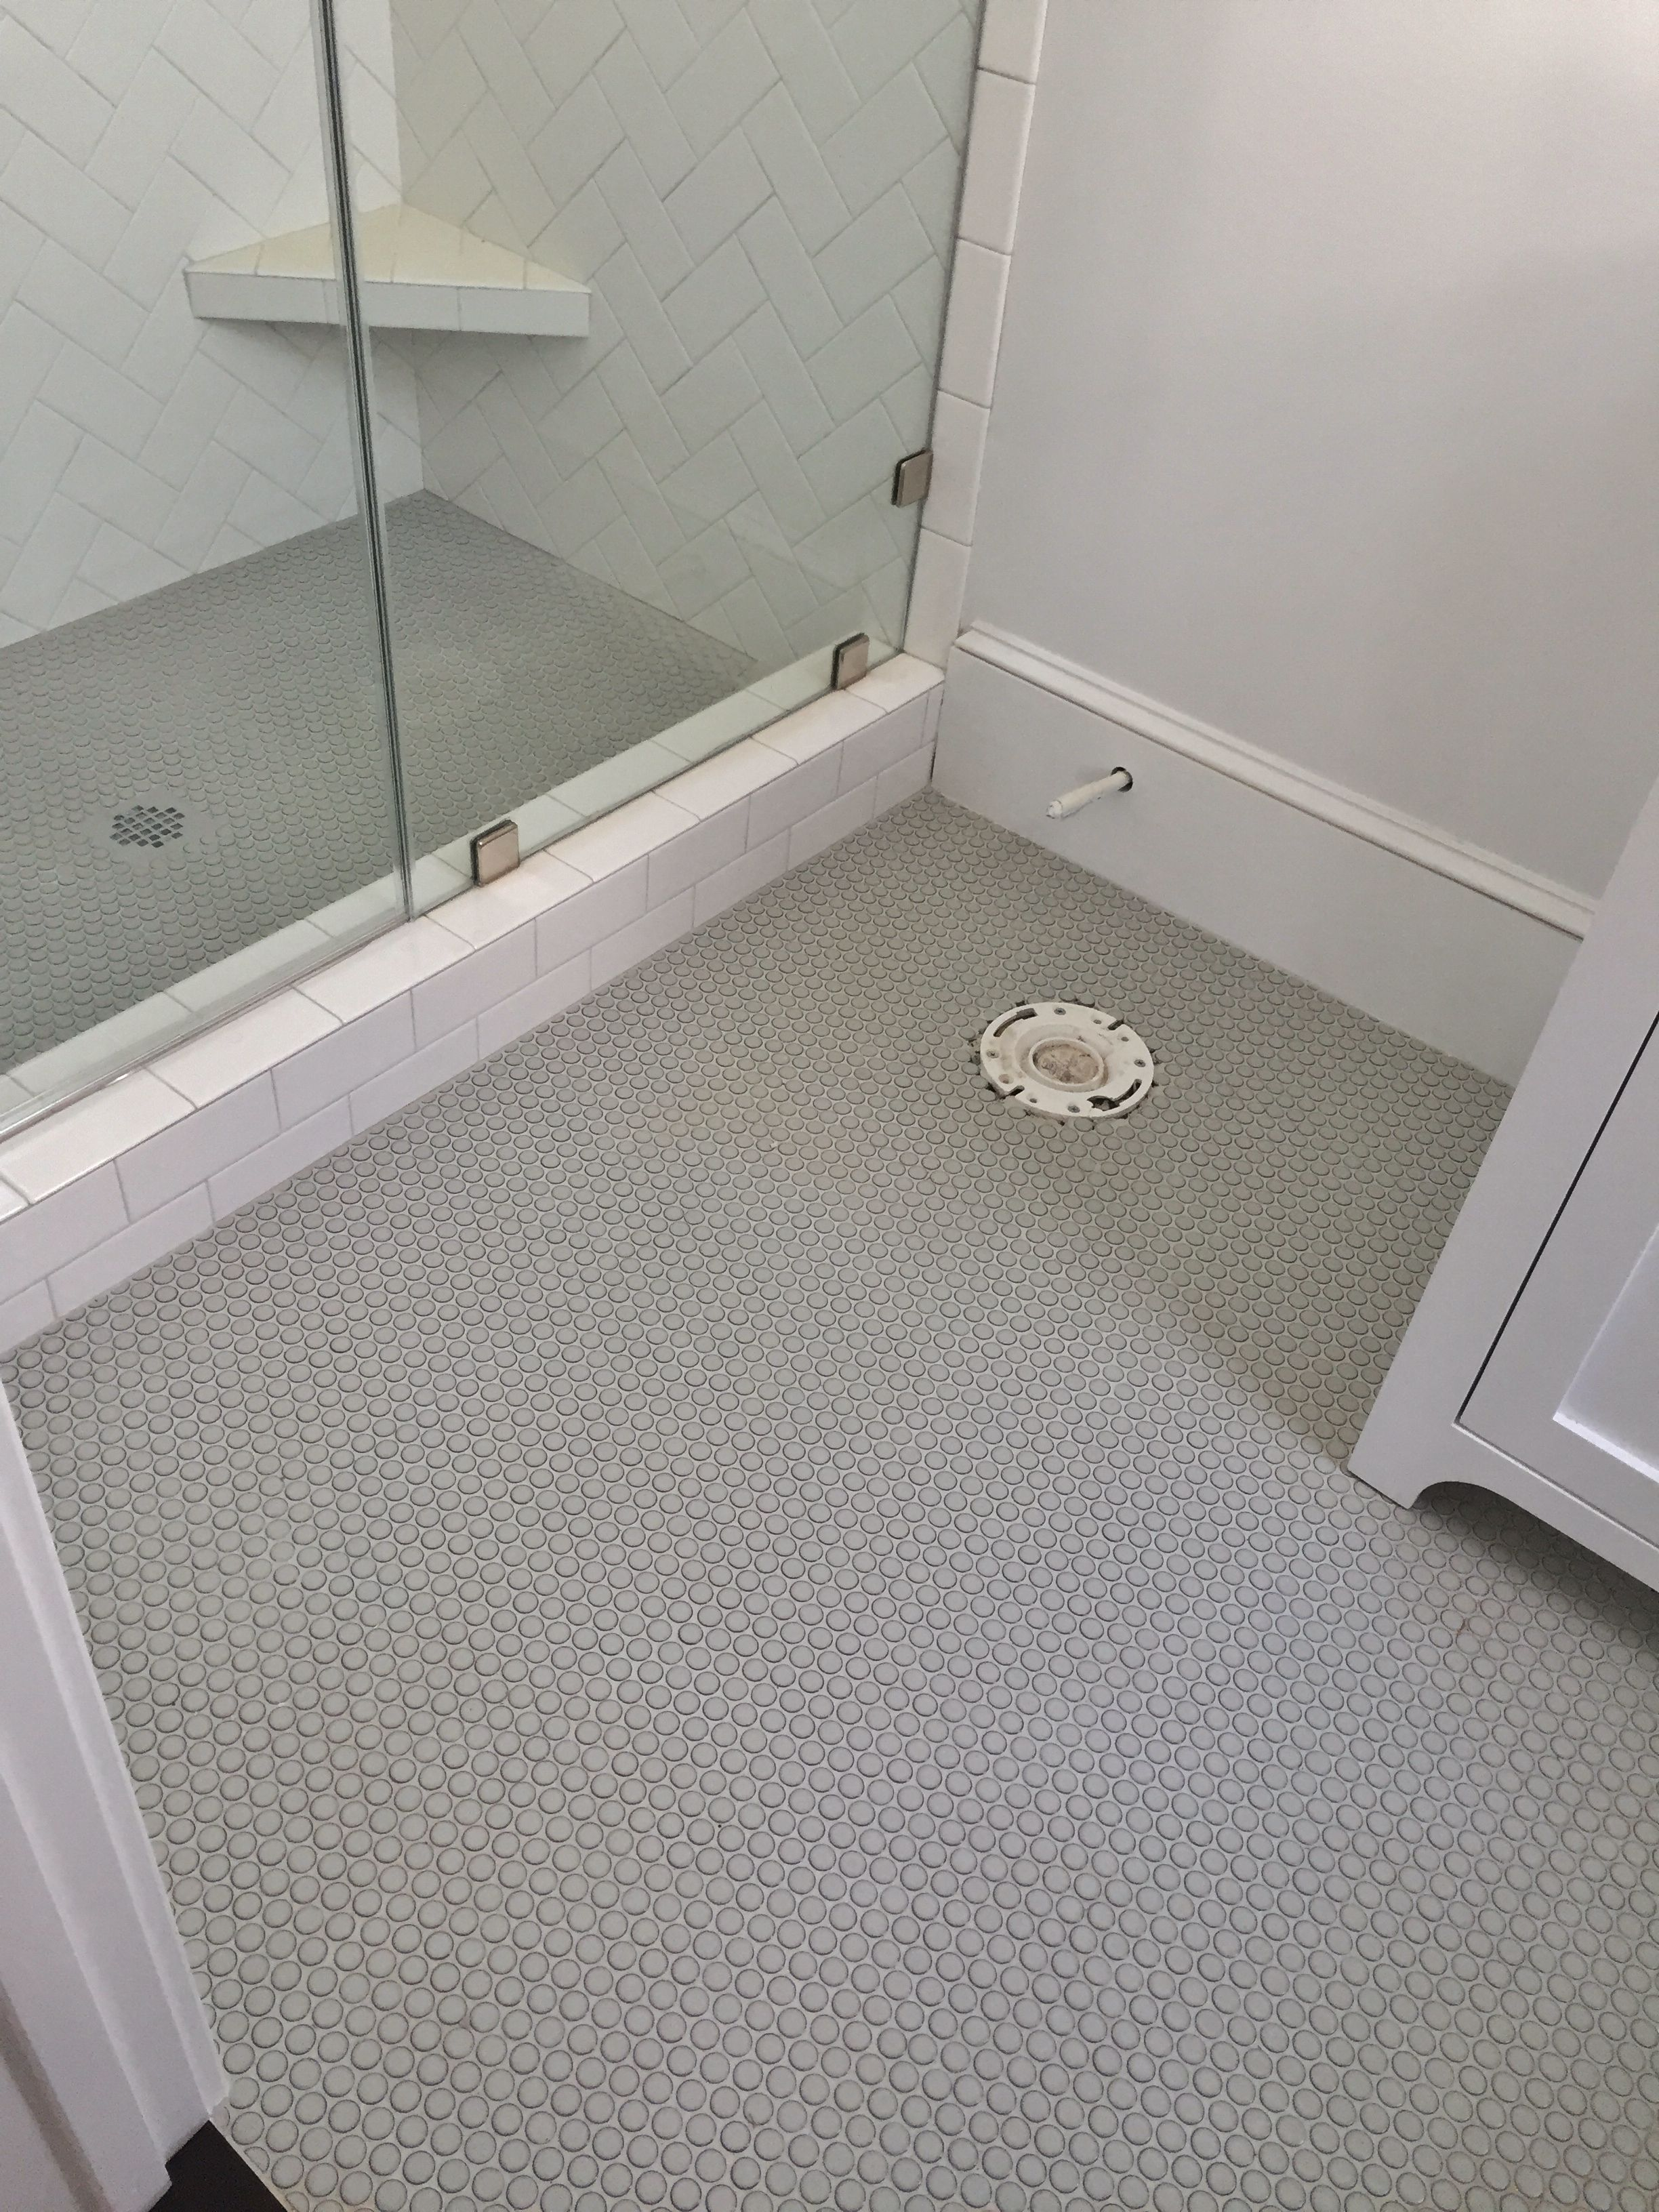 gray penny rounds on bathroom floor and shower floor 3x6 white subway tile set in